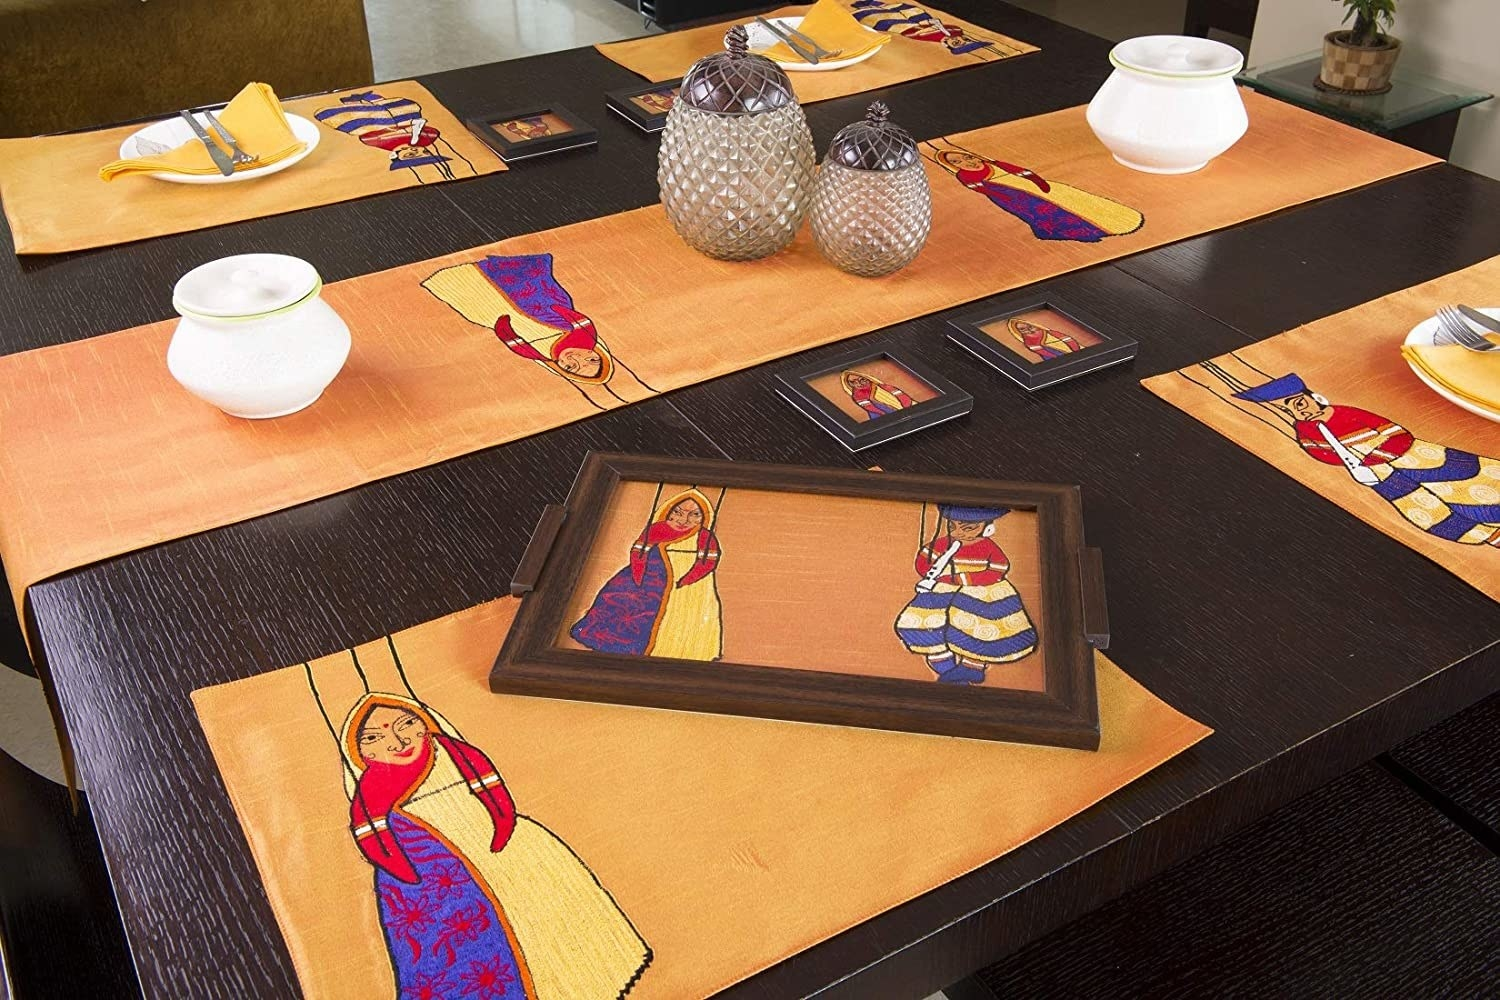 A table set up with the table runner and table mats, coasters, etc. in a similar design.